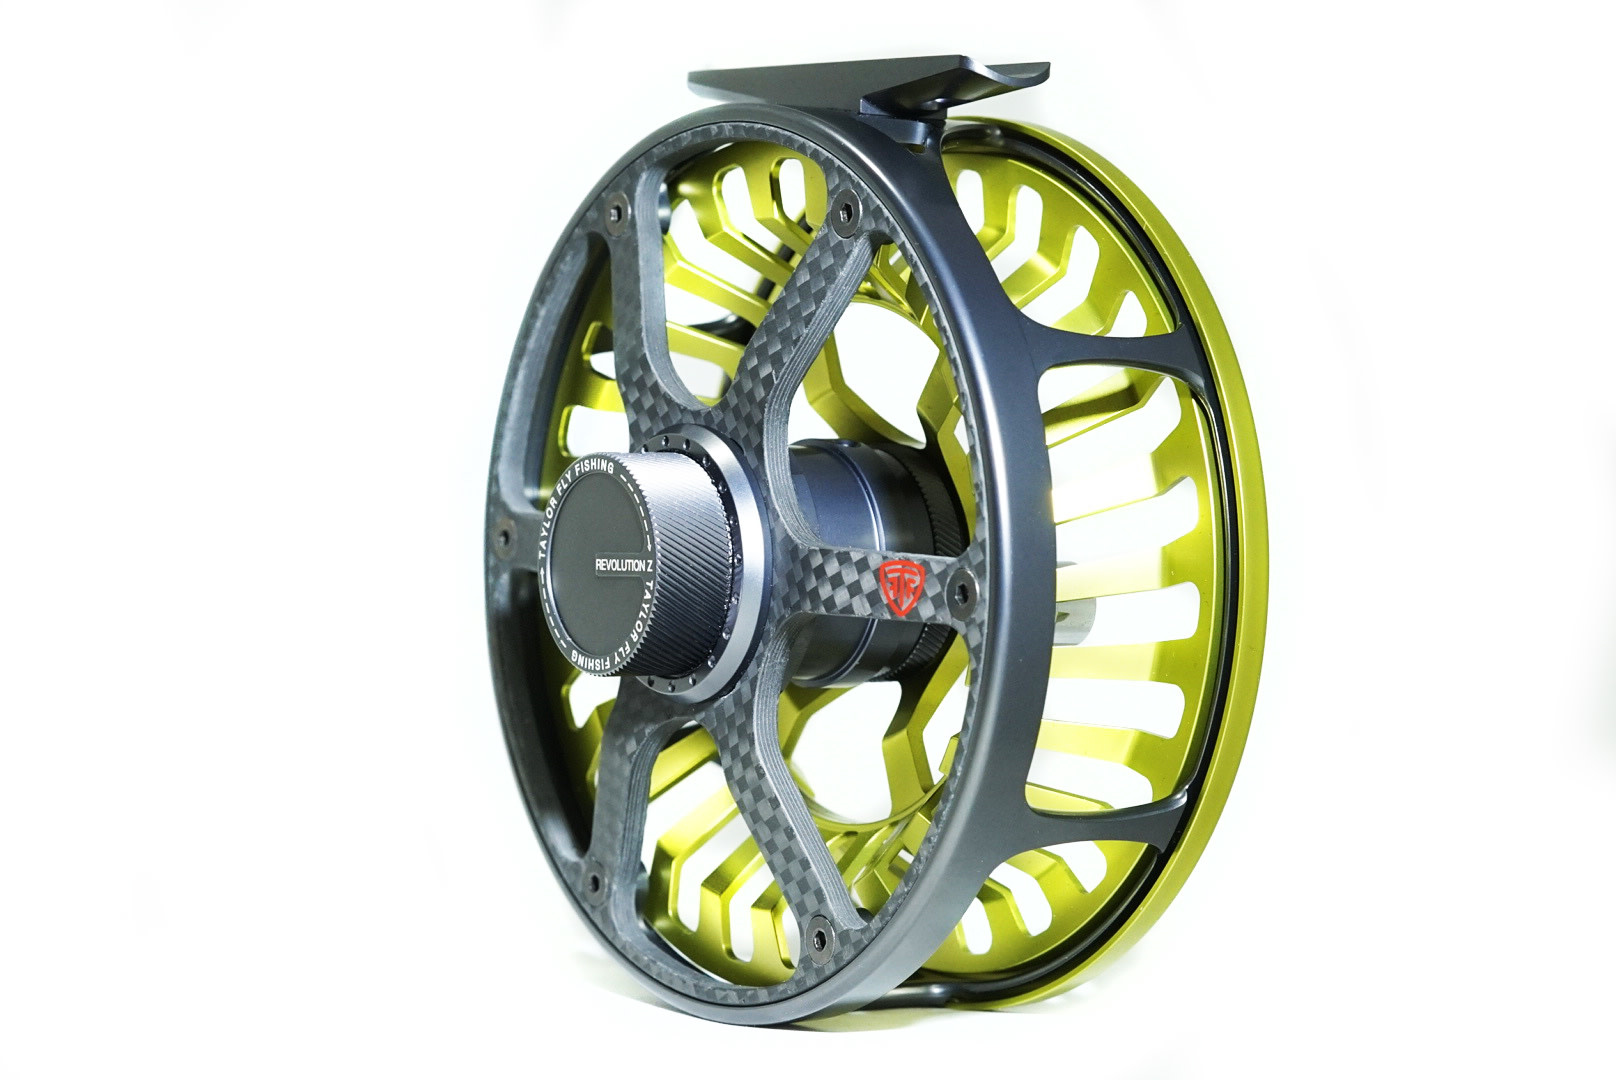 TAYLOR FLY FISHING TAYLOR REVOLUTION Z